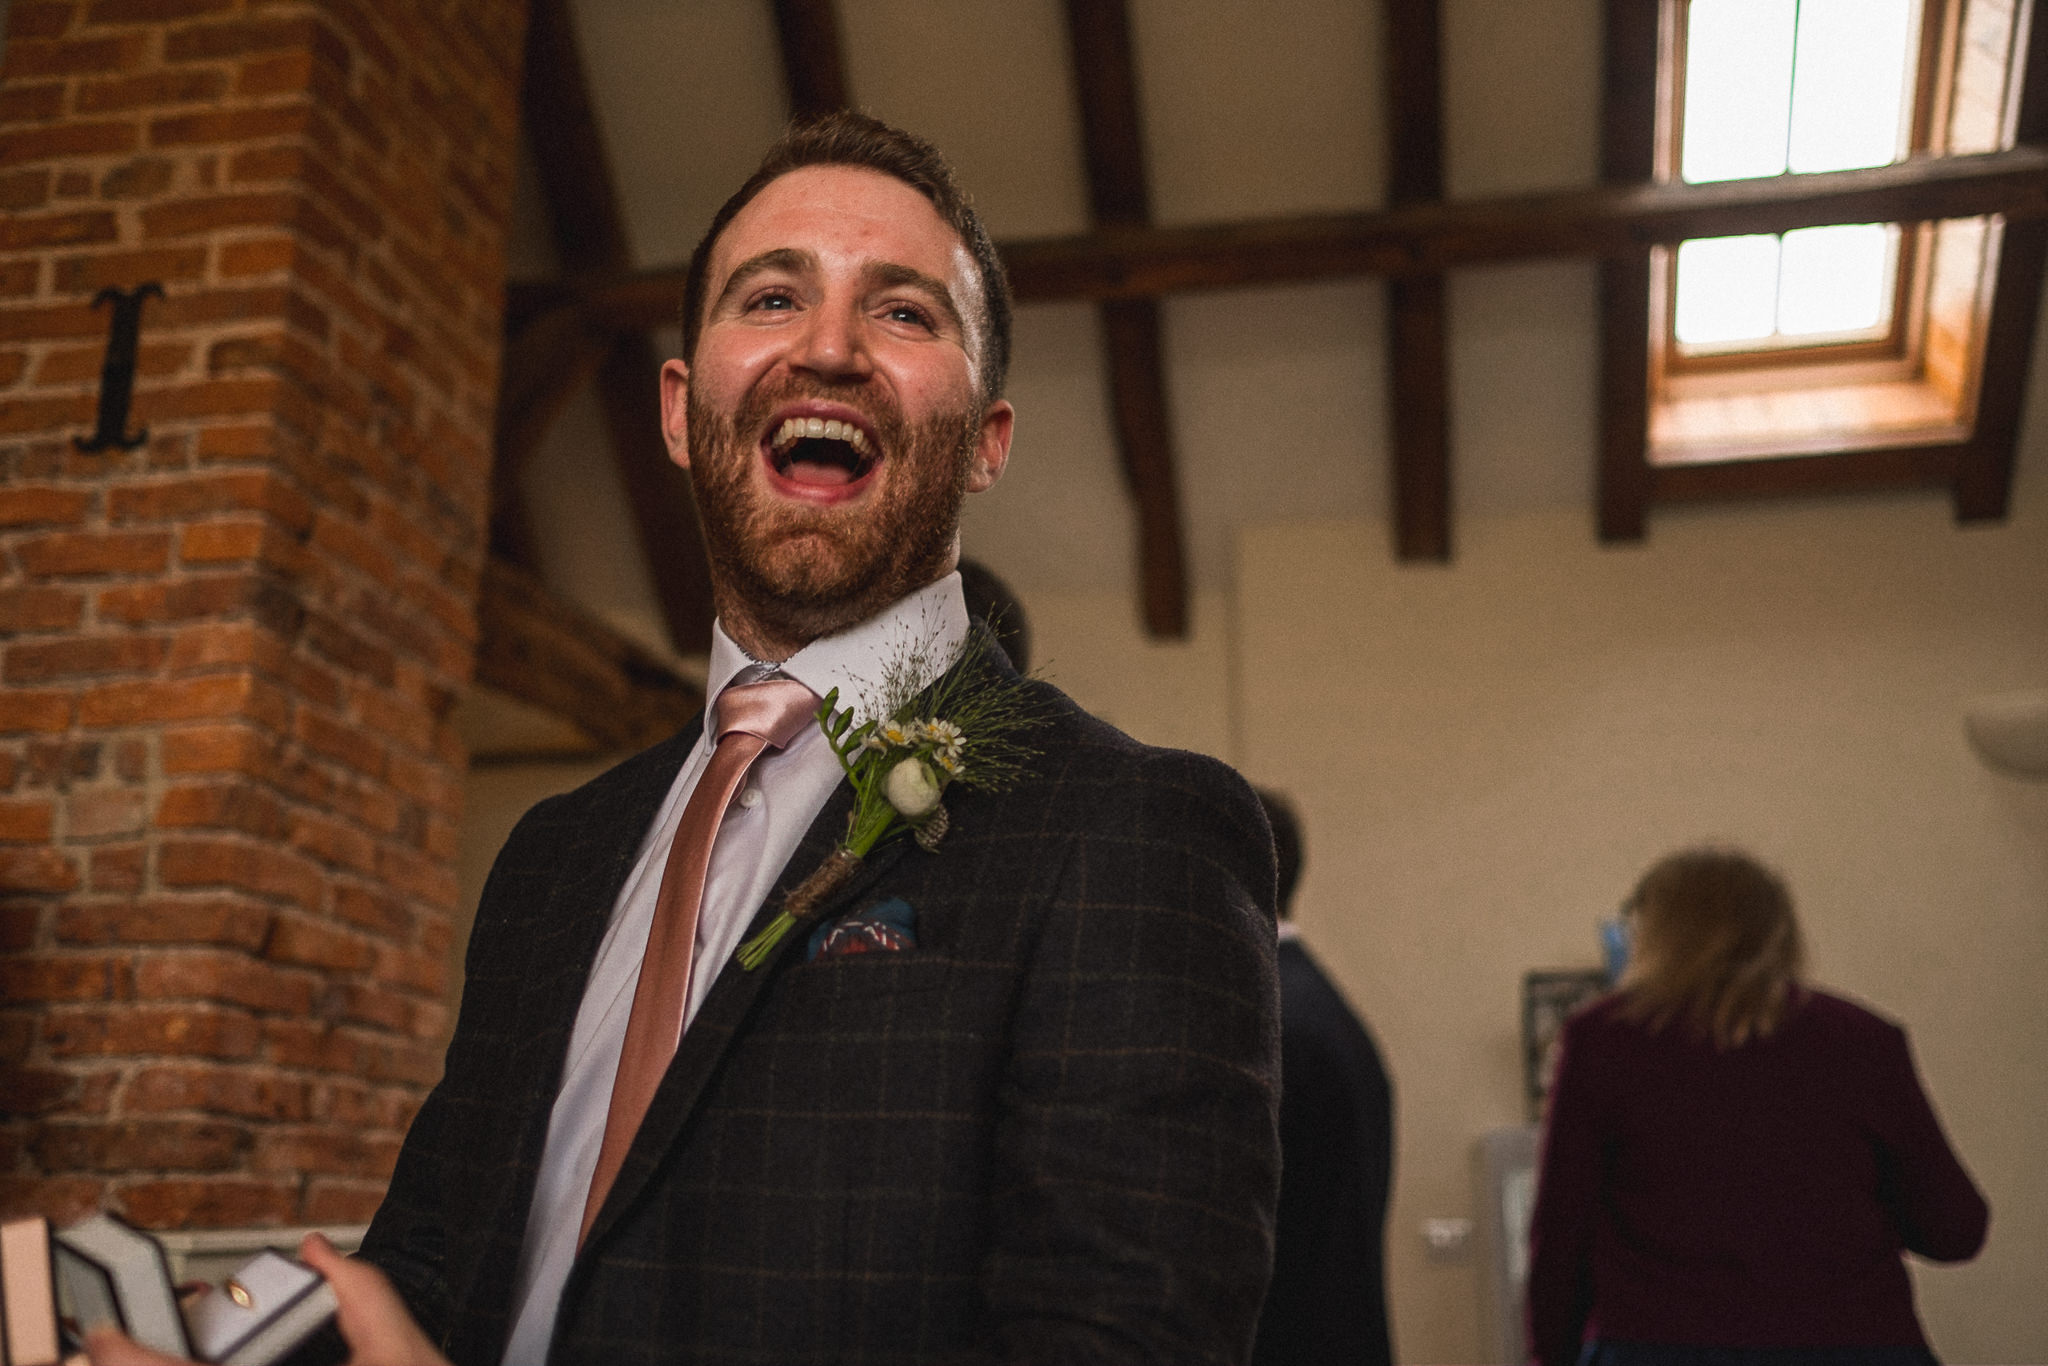 Quirky Candid wedding photography of groomsmen getting ready in style for wedding at Berts Barrow Farm